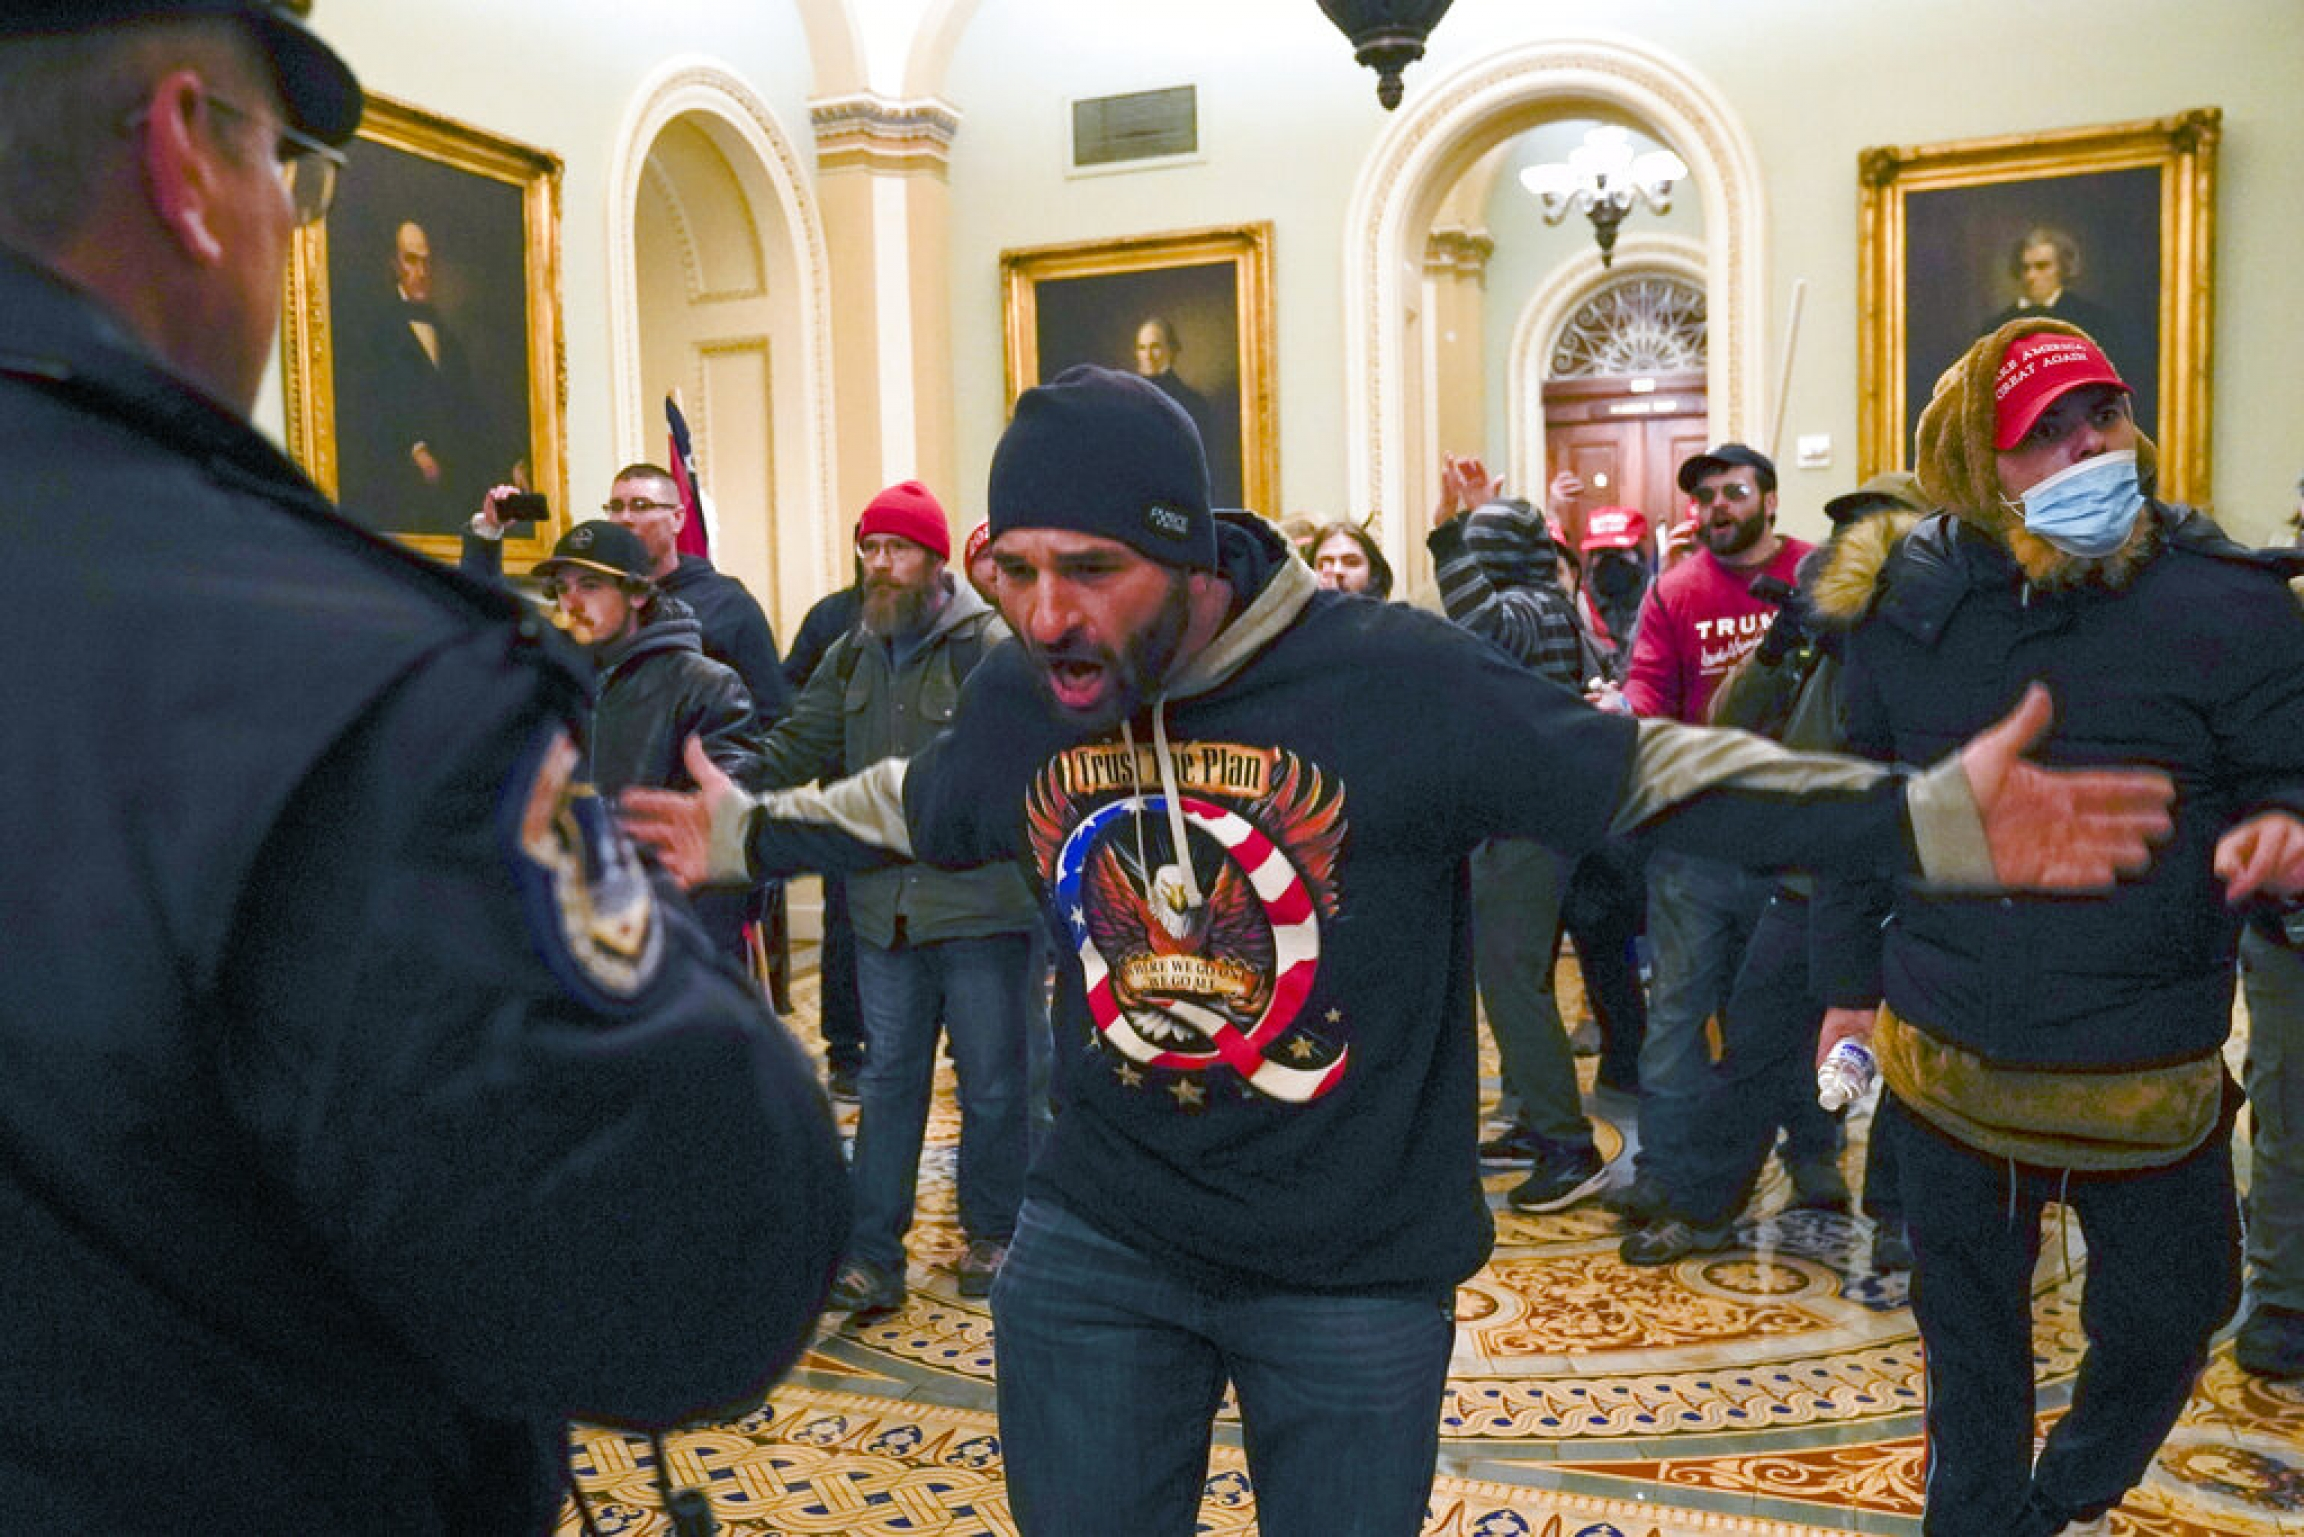 Trump supporters gesture to US Capitol Police in the hallway outside of the Senate chamber at the Capitol in Washington, Jan. 6, 2021.